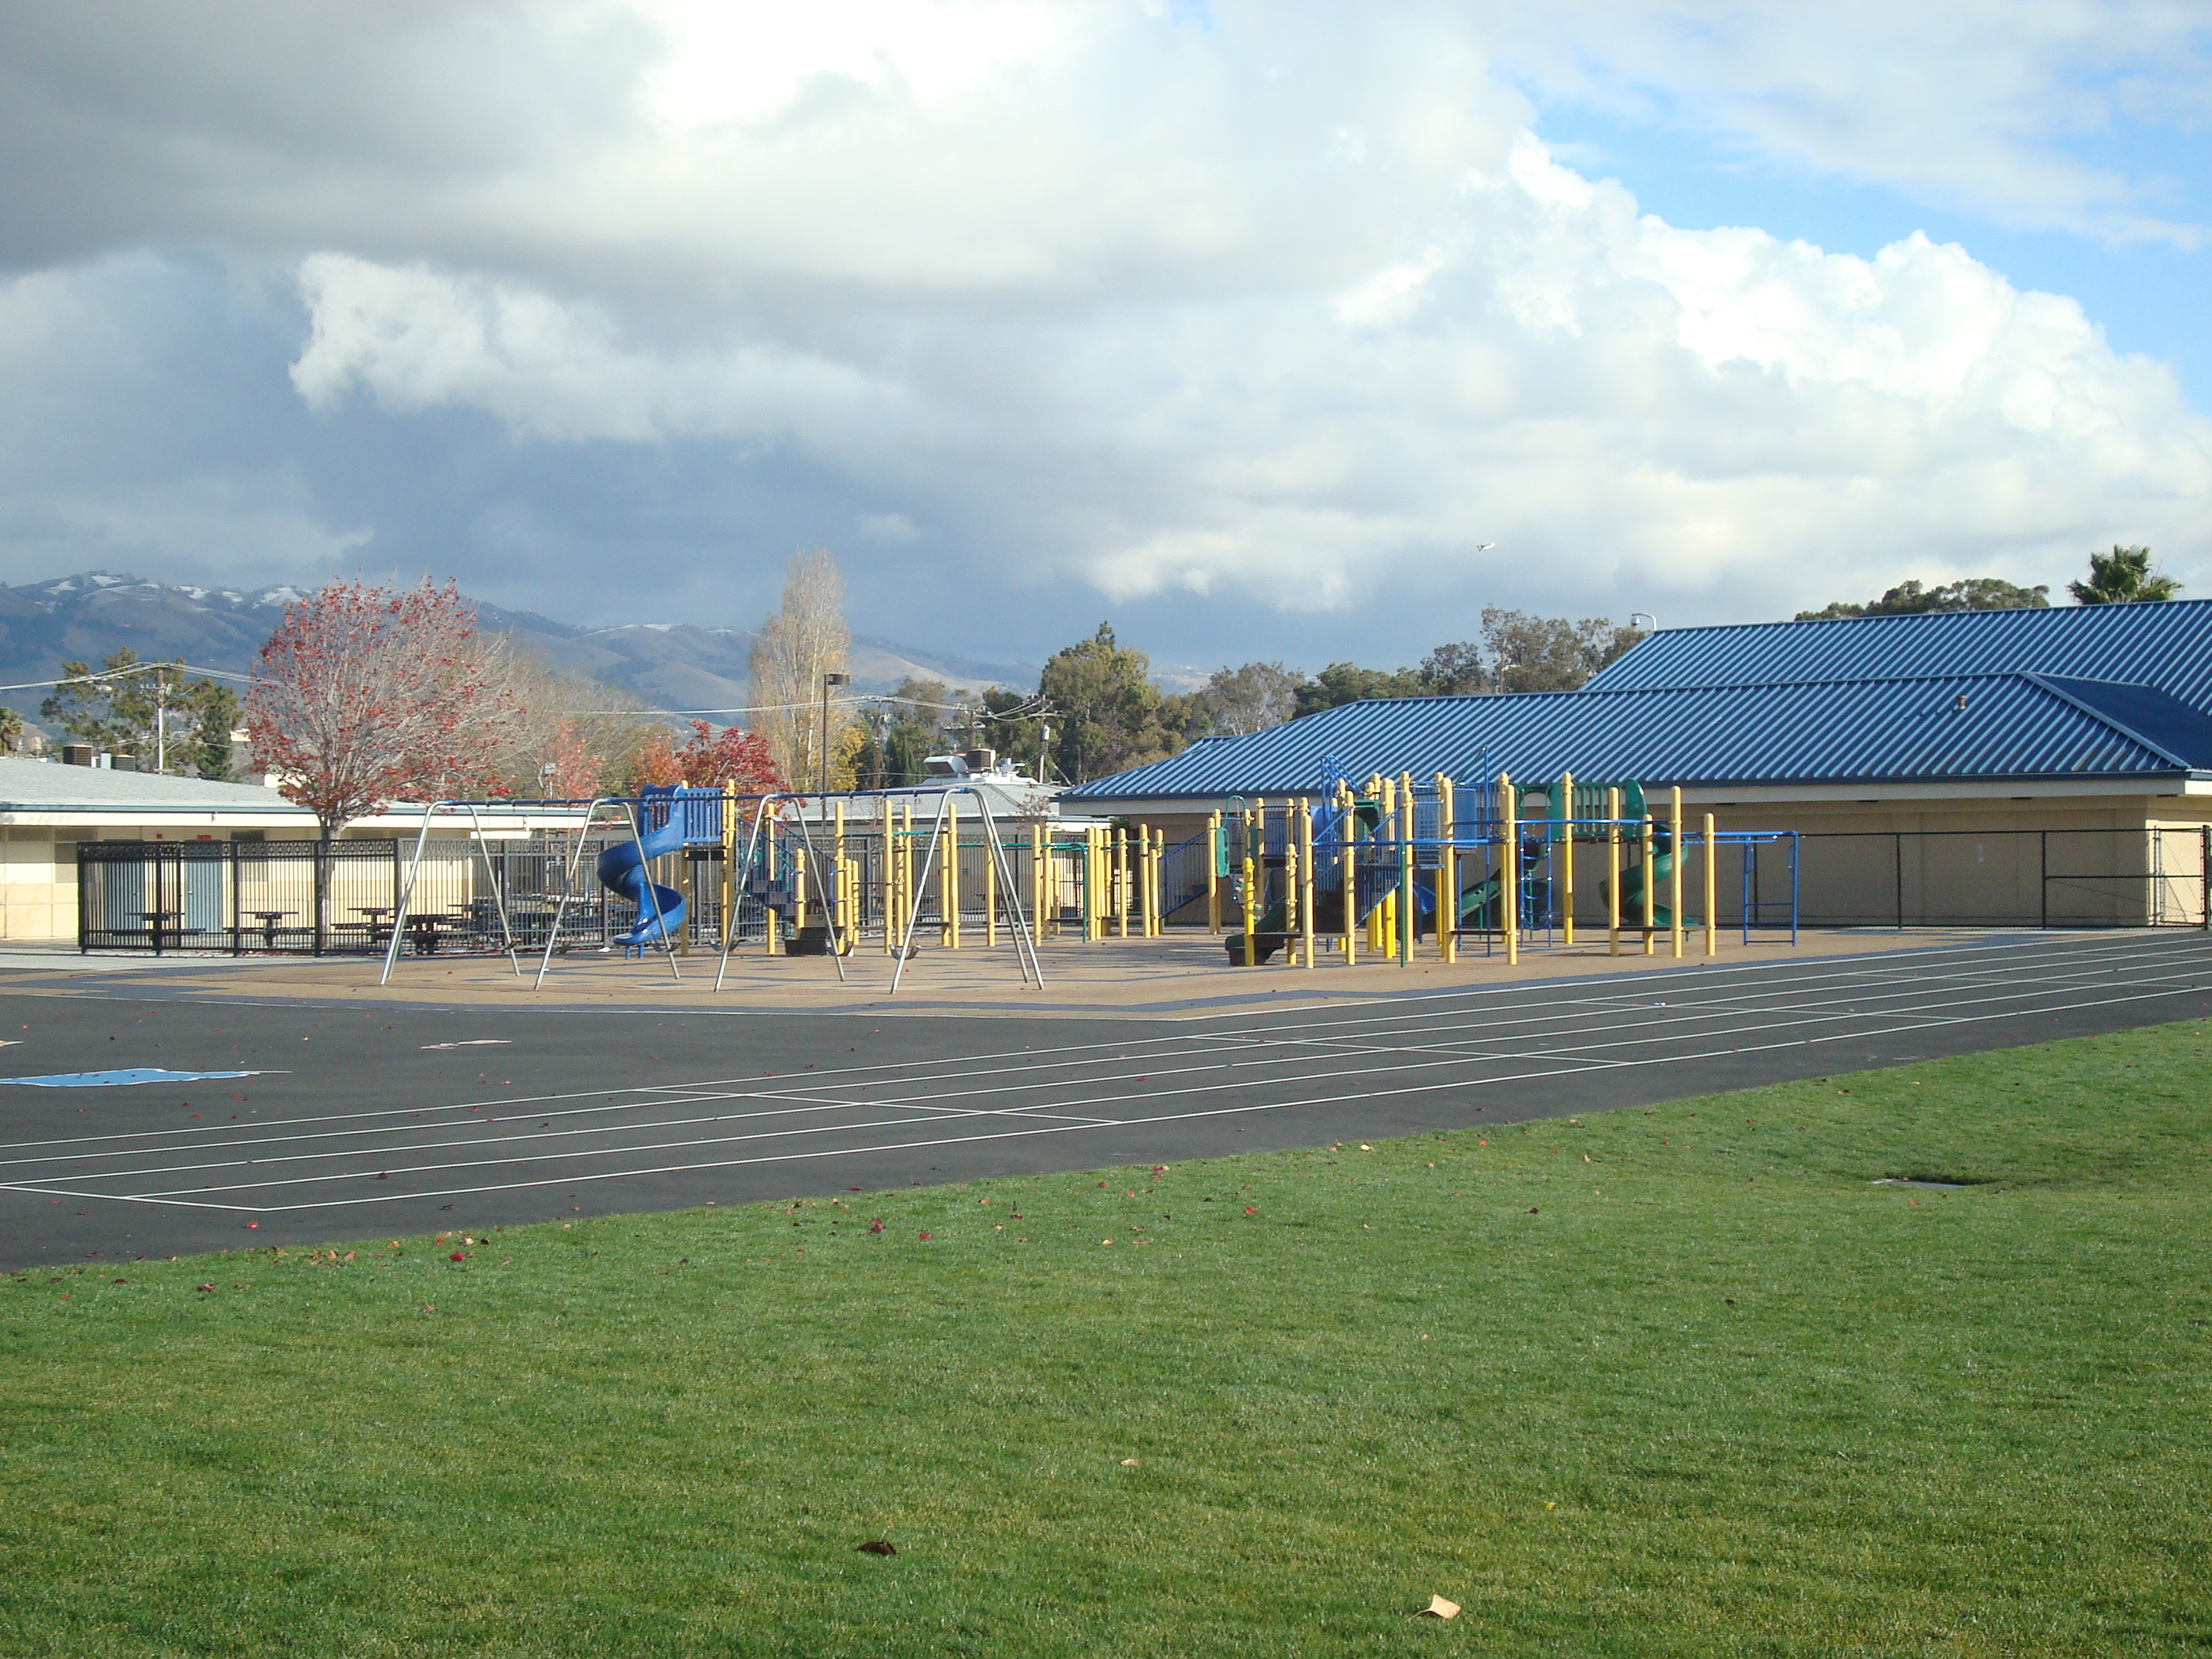 KR Smith Elementary School